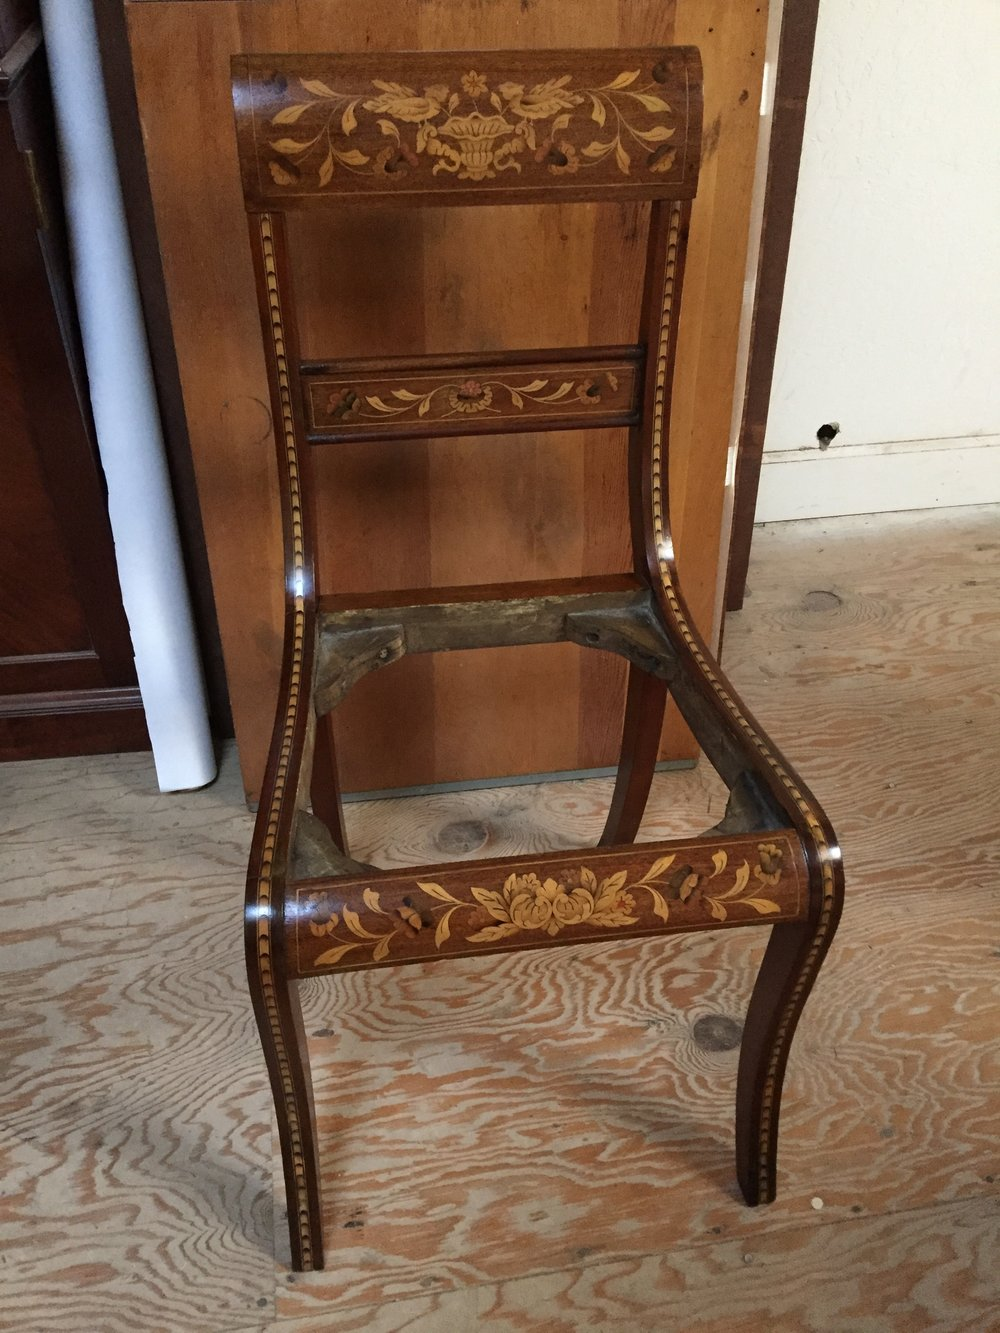 Restored side chair.